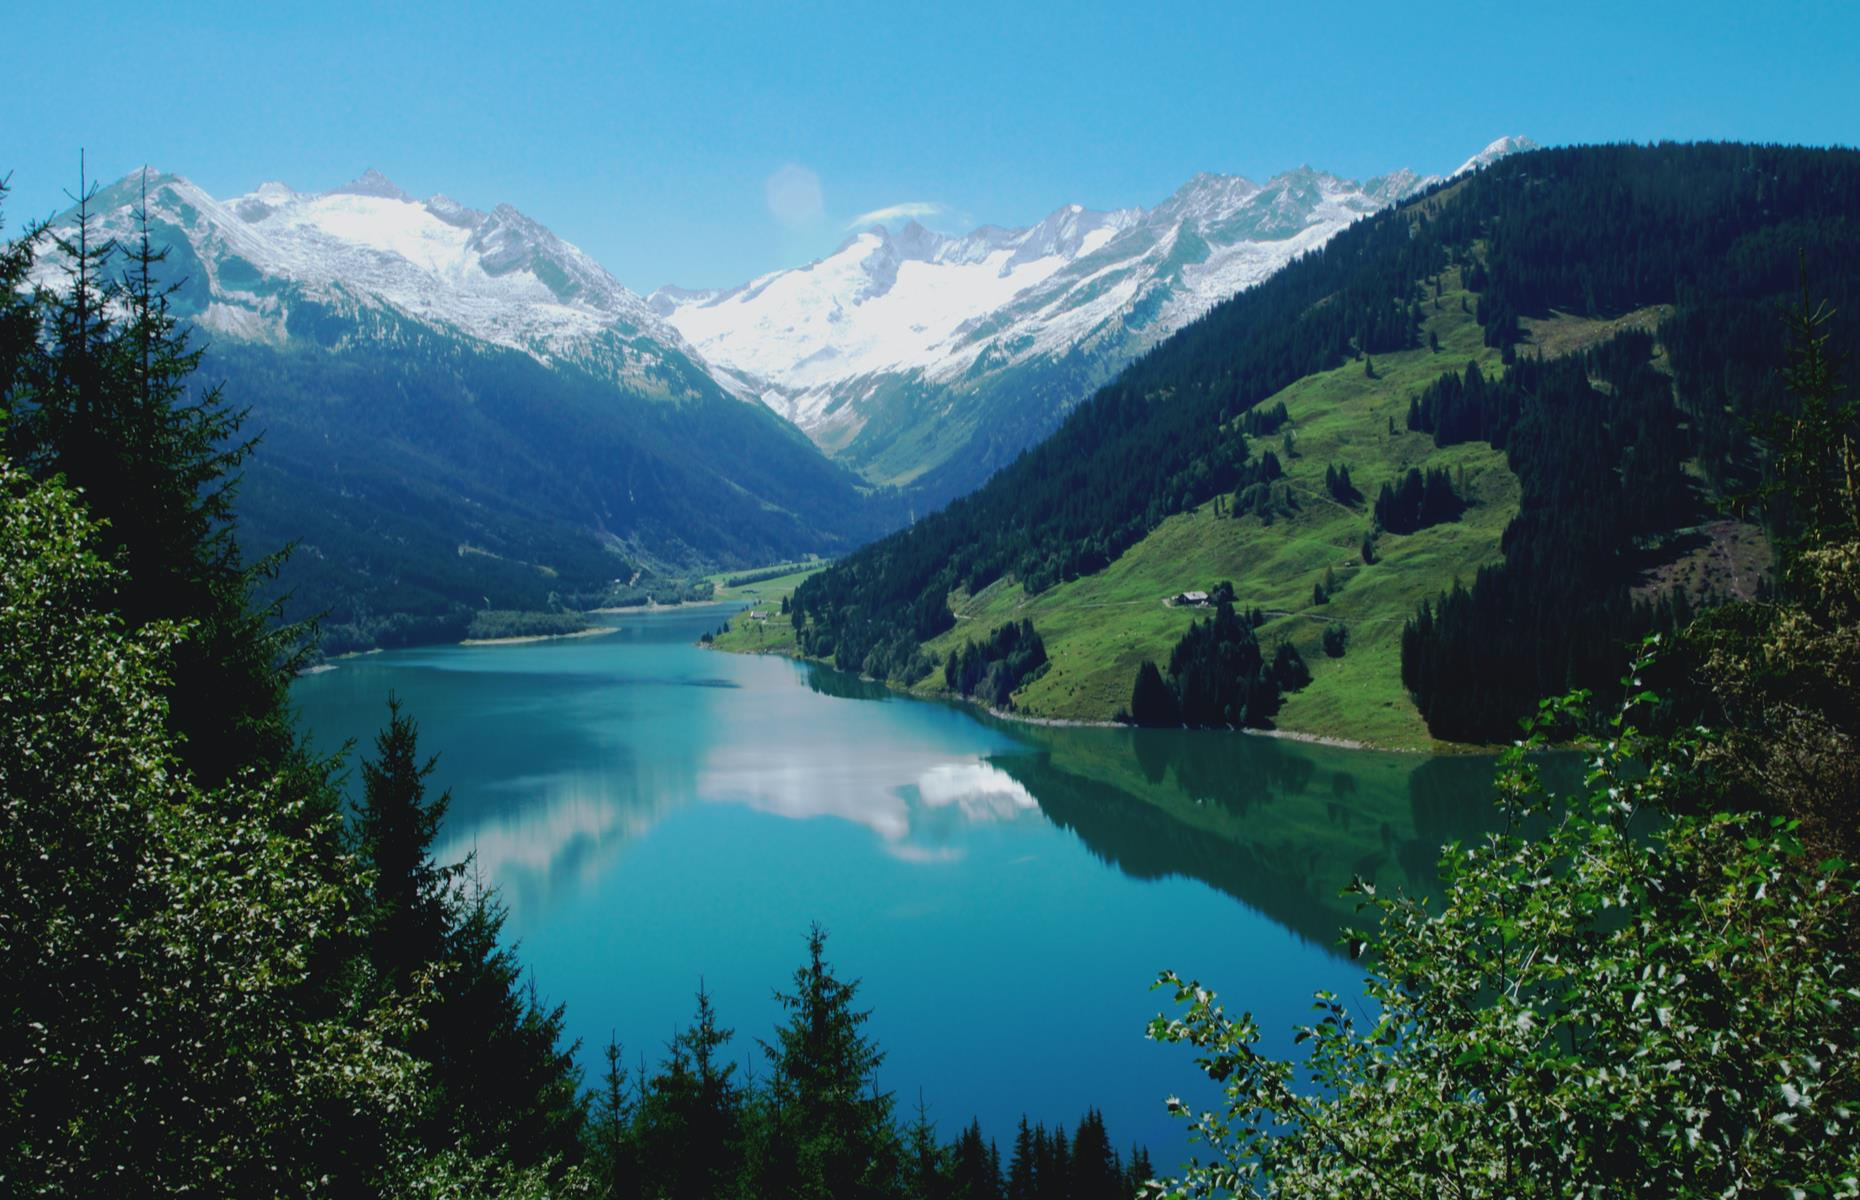 Slide 31 of 31: Surrounded by the Zillertal Alps and the Reichenspitz mountain range, the stunning Durlassboden Basin stretches between the Austrian states of Tyrol and Salzburg. The high-altitude reservoir (4,593ft/1,400m) is usually a hive of activity with hikers and cyclists doing the circuit around the water (there are cozy mountain restaurants to refresh along the way) or venturing further up in to the mountains. The lake is a lovely spot for swimming and watersports too, and lays claim to having the highest sail and surf school in Austria.